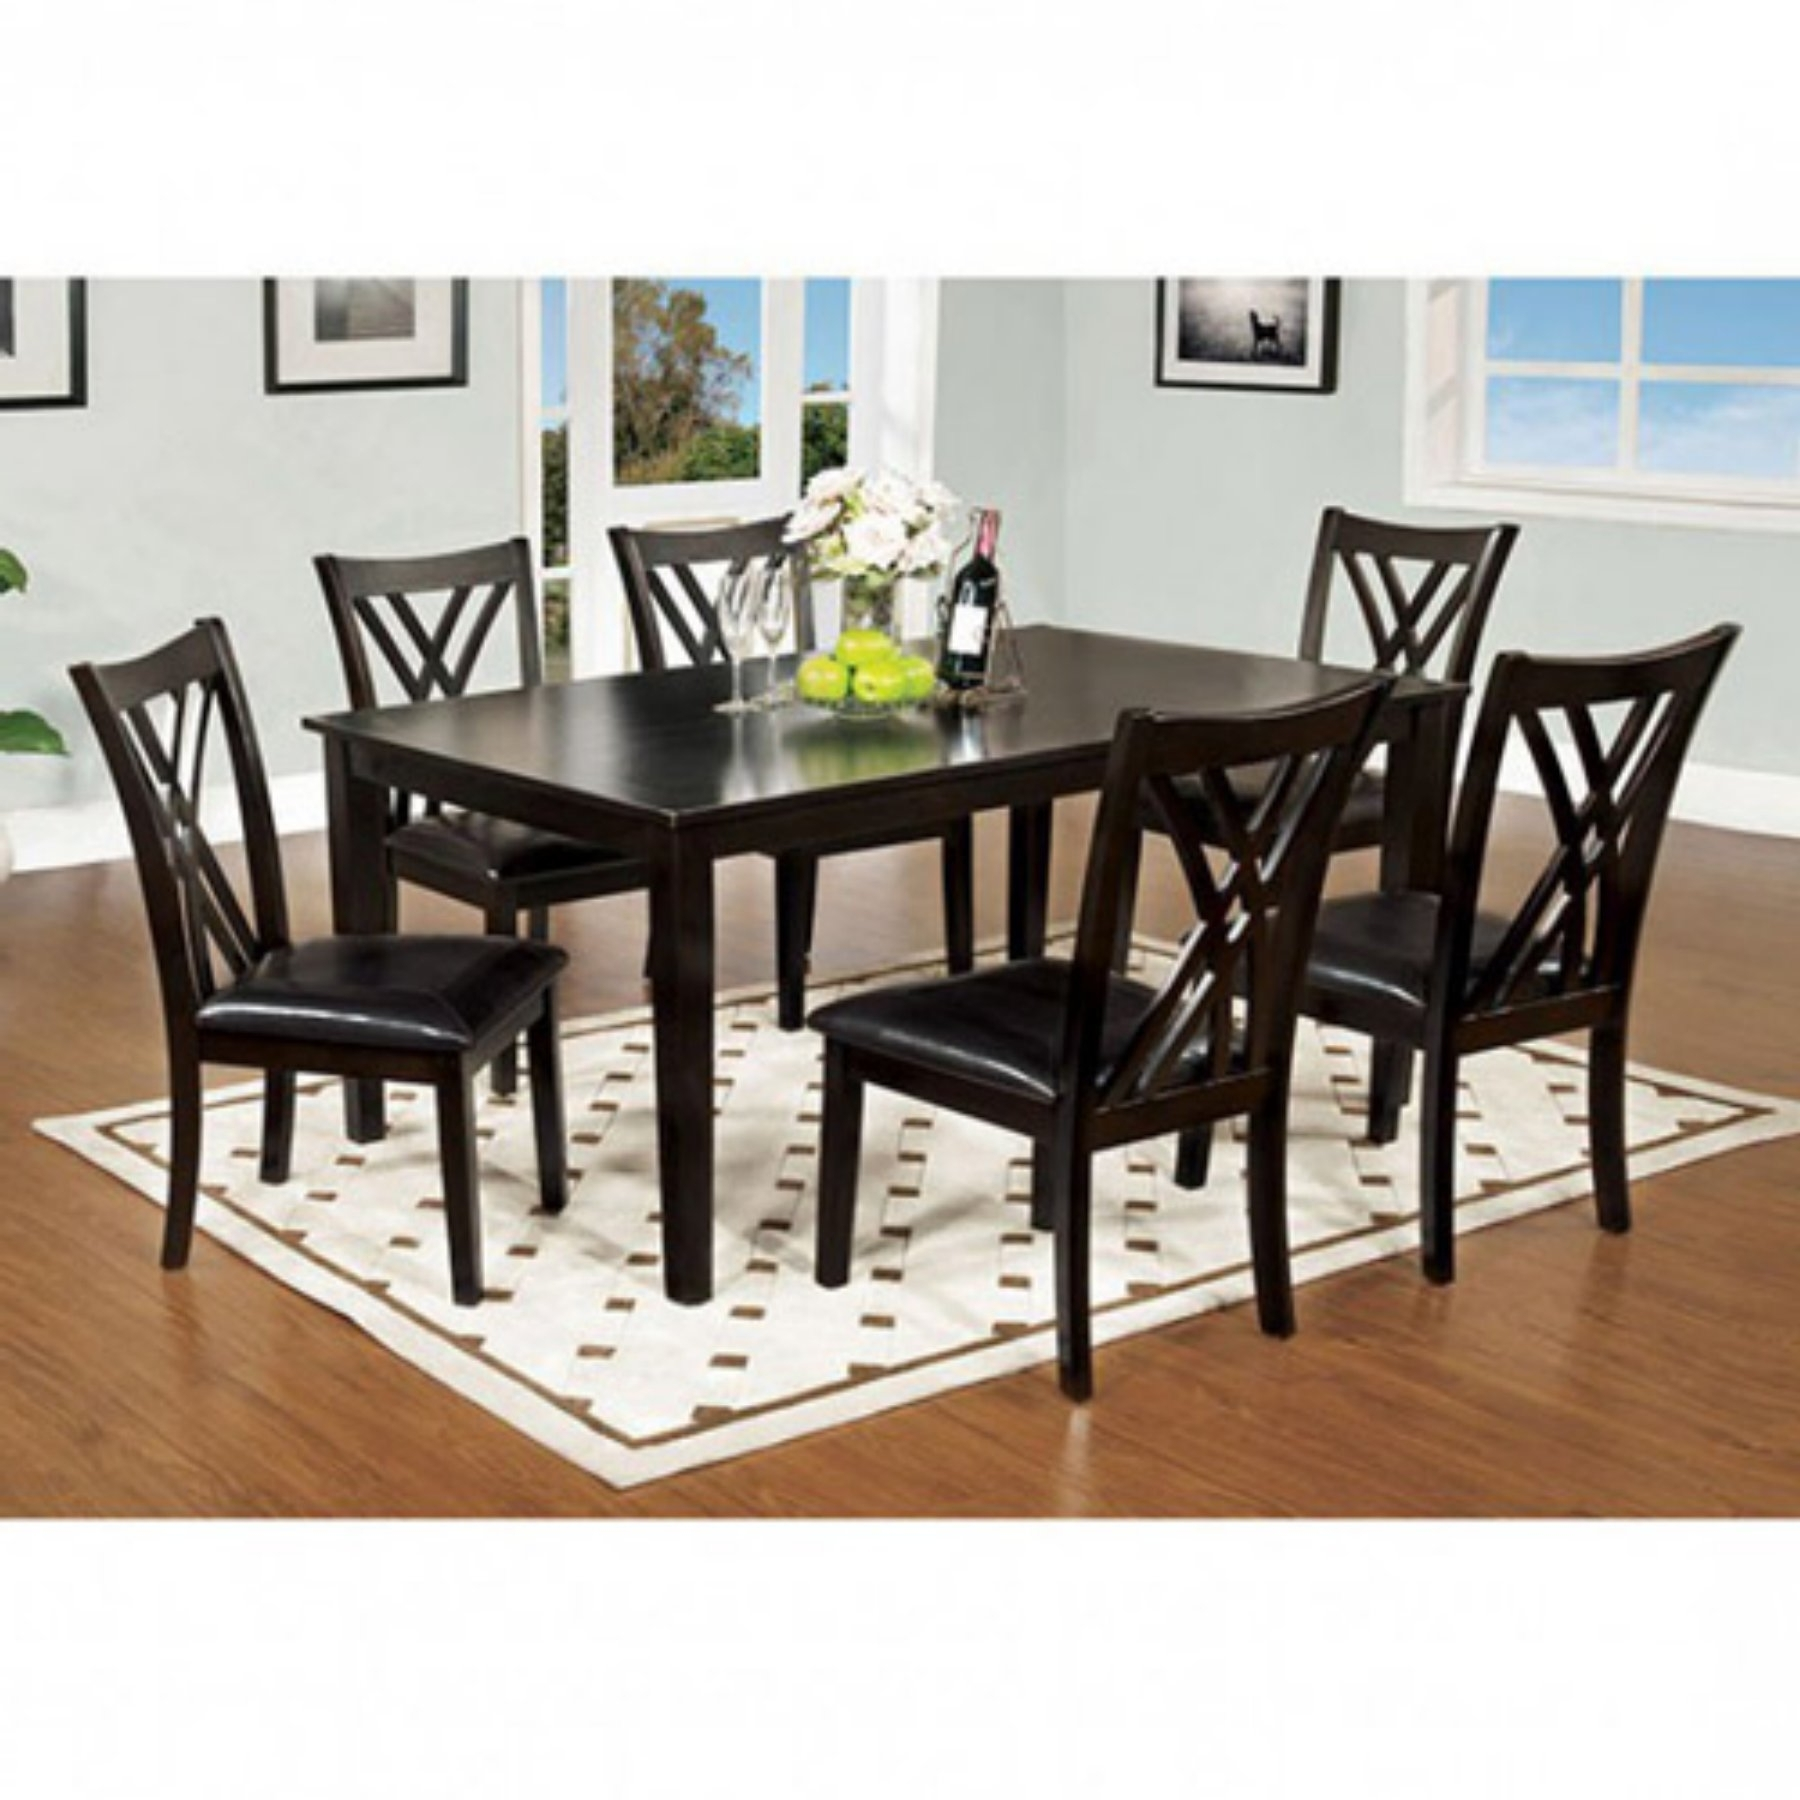 Benzara Springhill Enticing 7 Piece Rectangular Dining Table Set In For Famous Market 7 Piece Dining Sets With Host And Side Chairs (View 18 of 25)